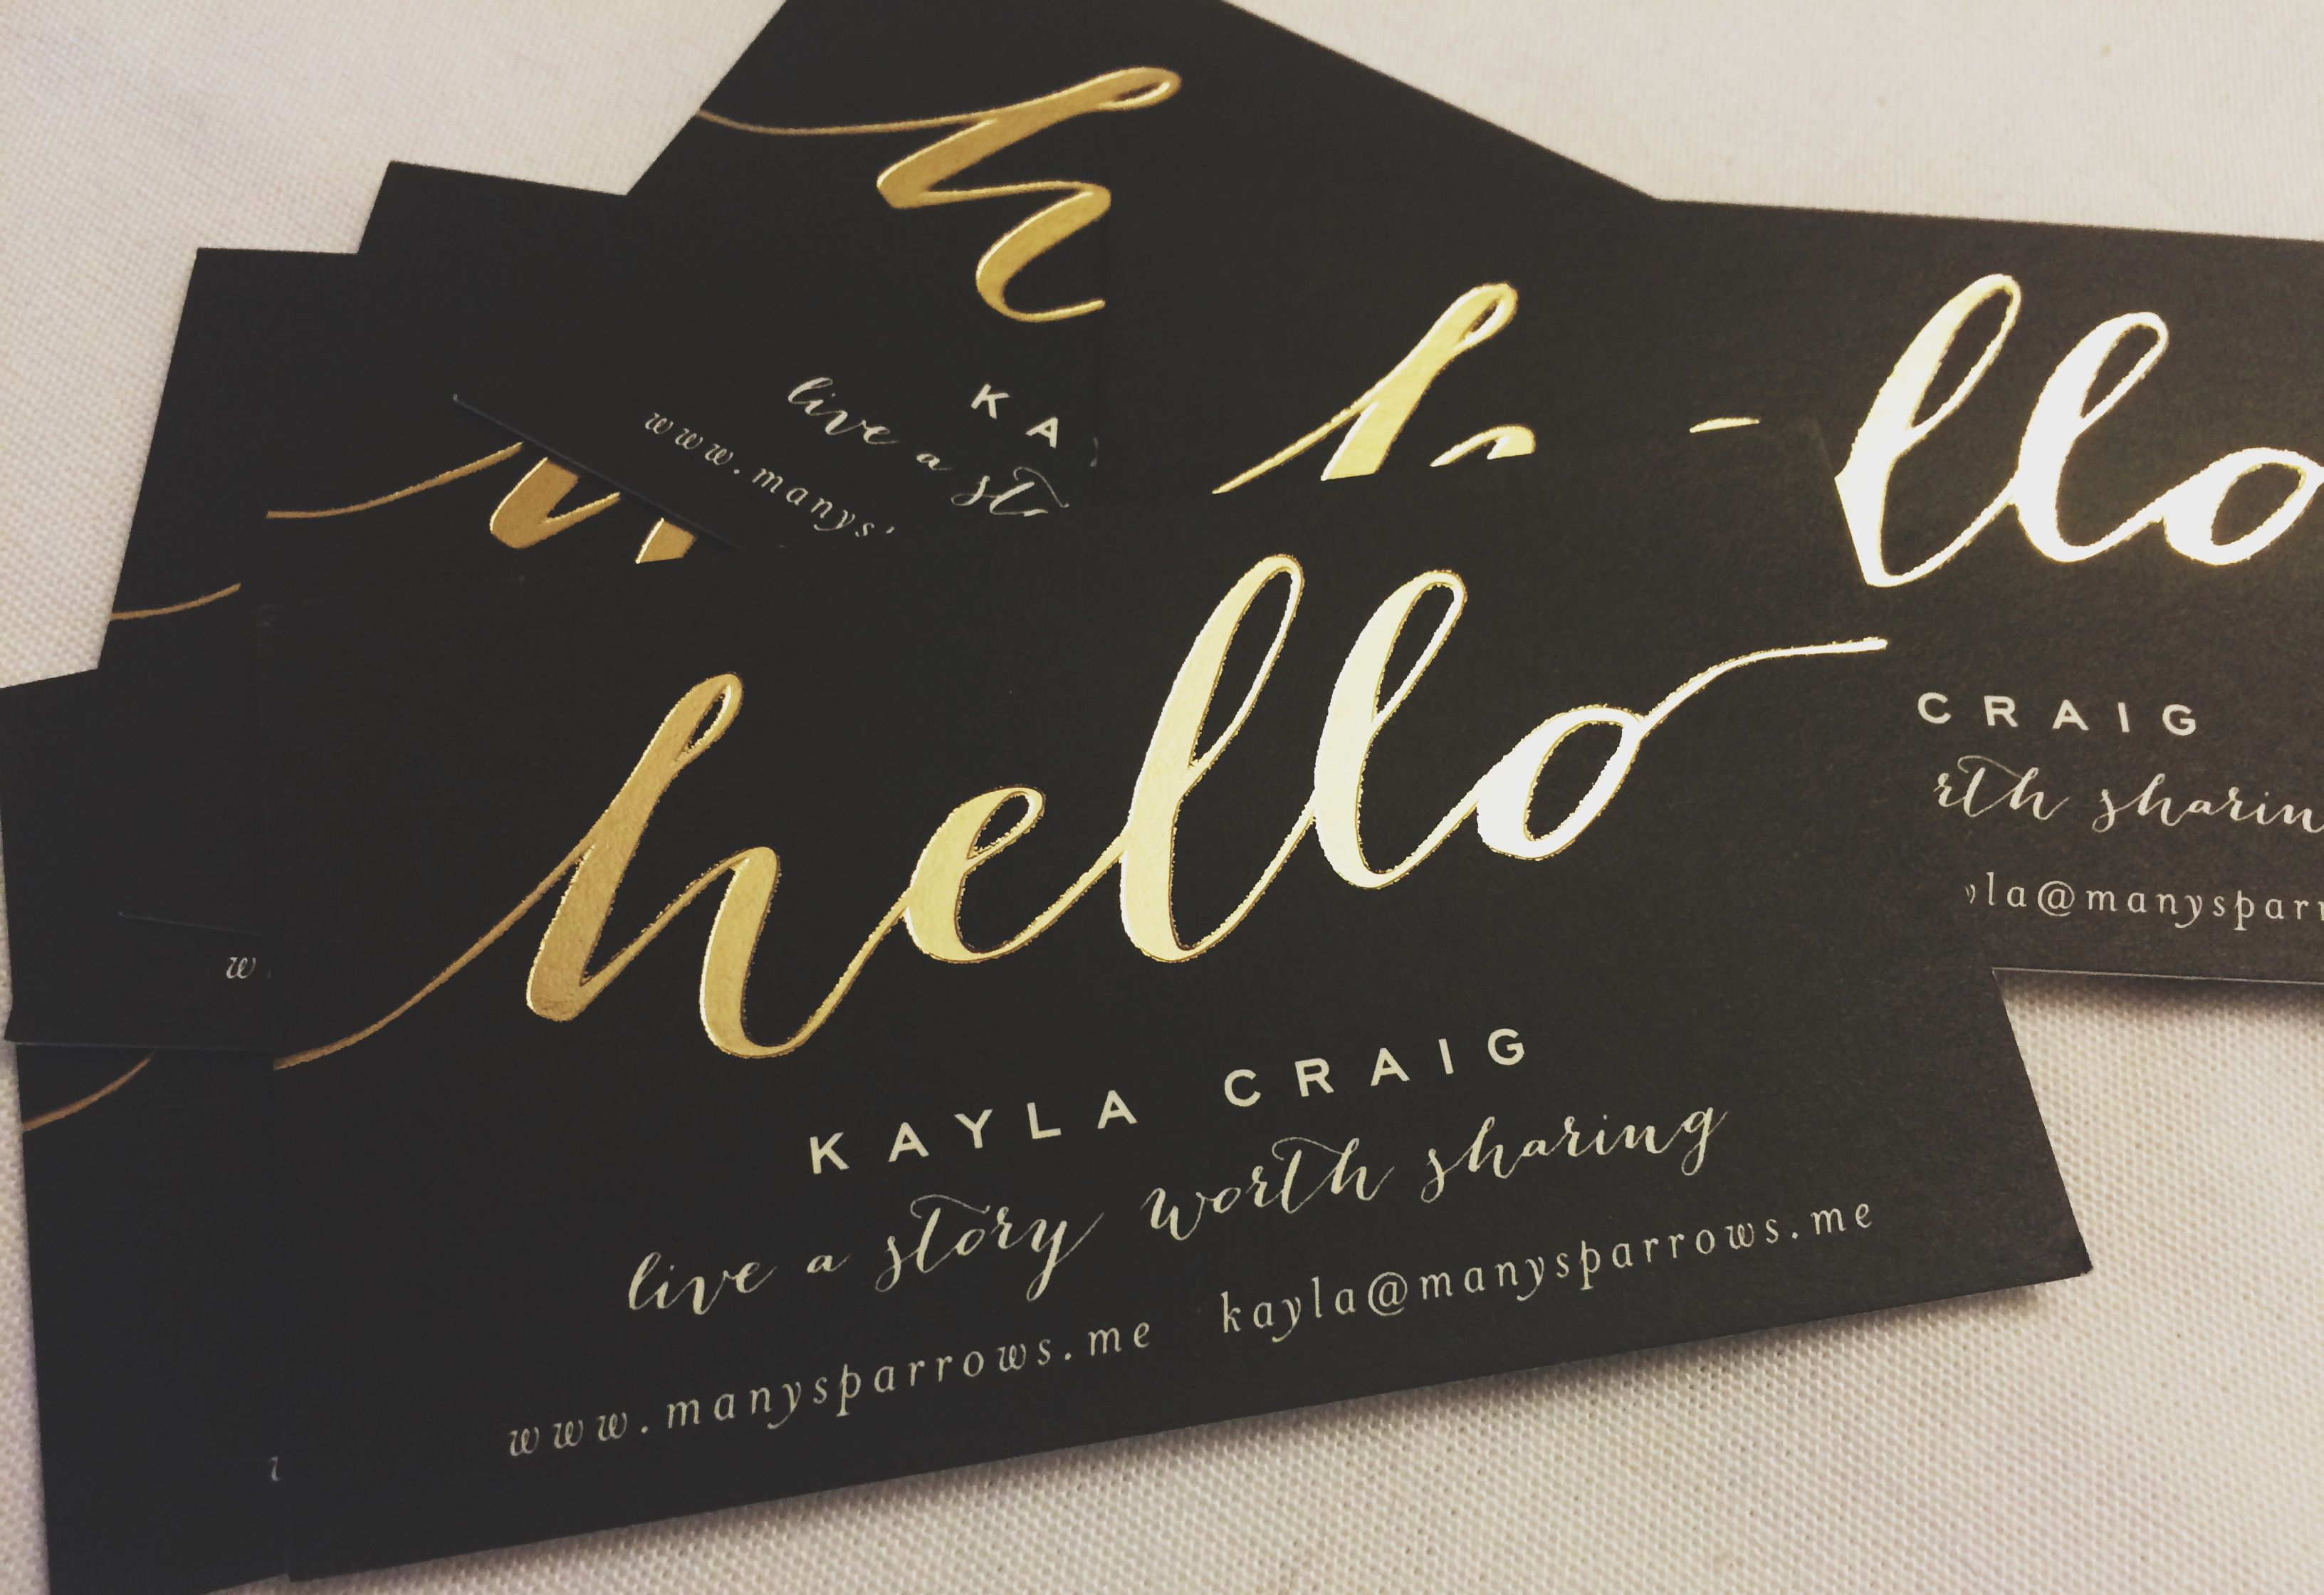 Minted gold foil business cards networking tips including what minted gold foil business cards networking tips including what to add on your colourmoves